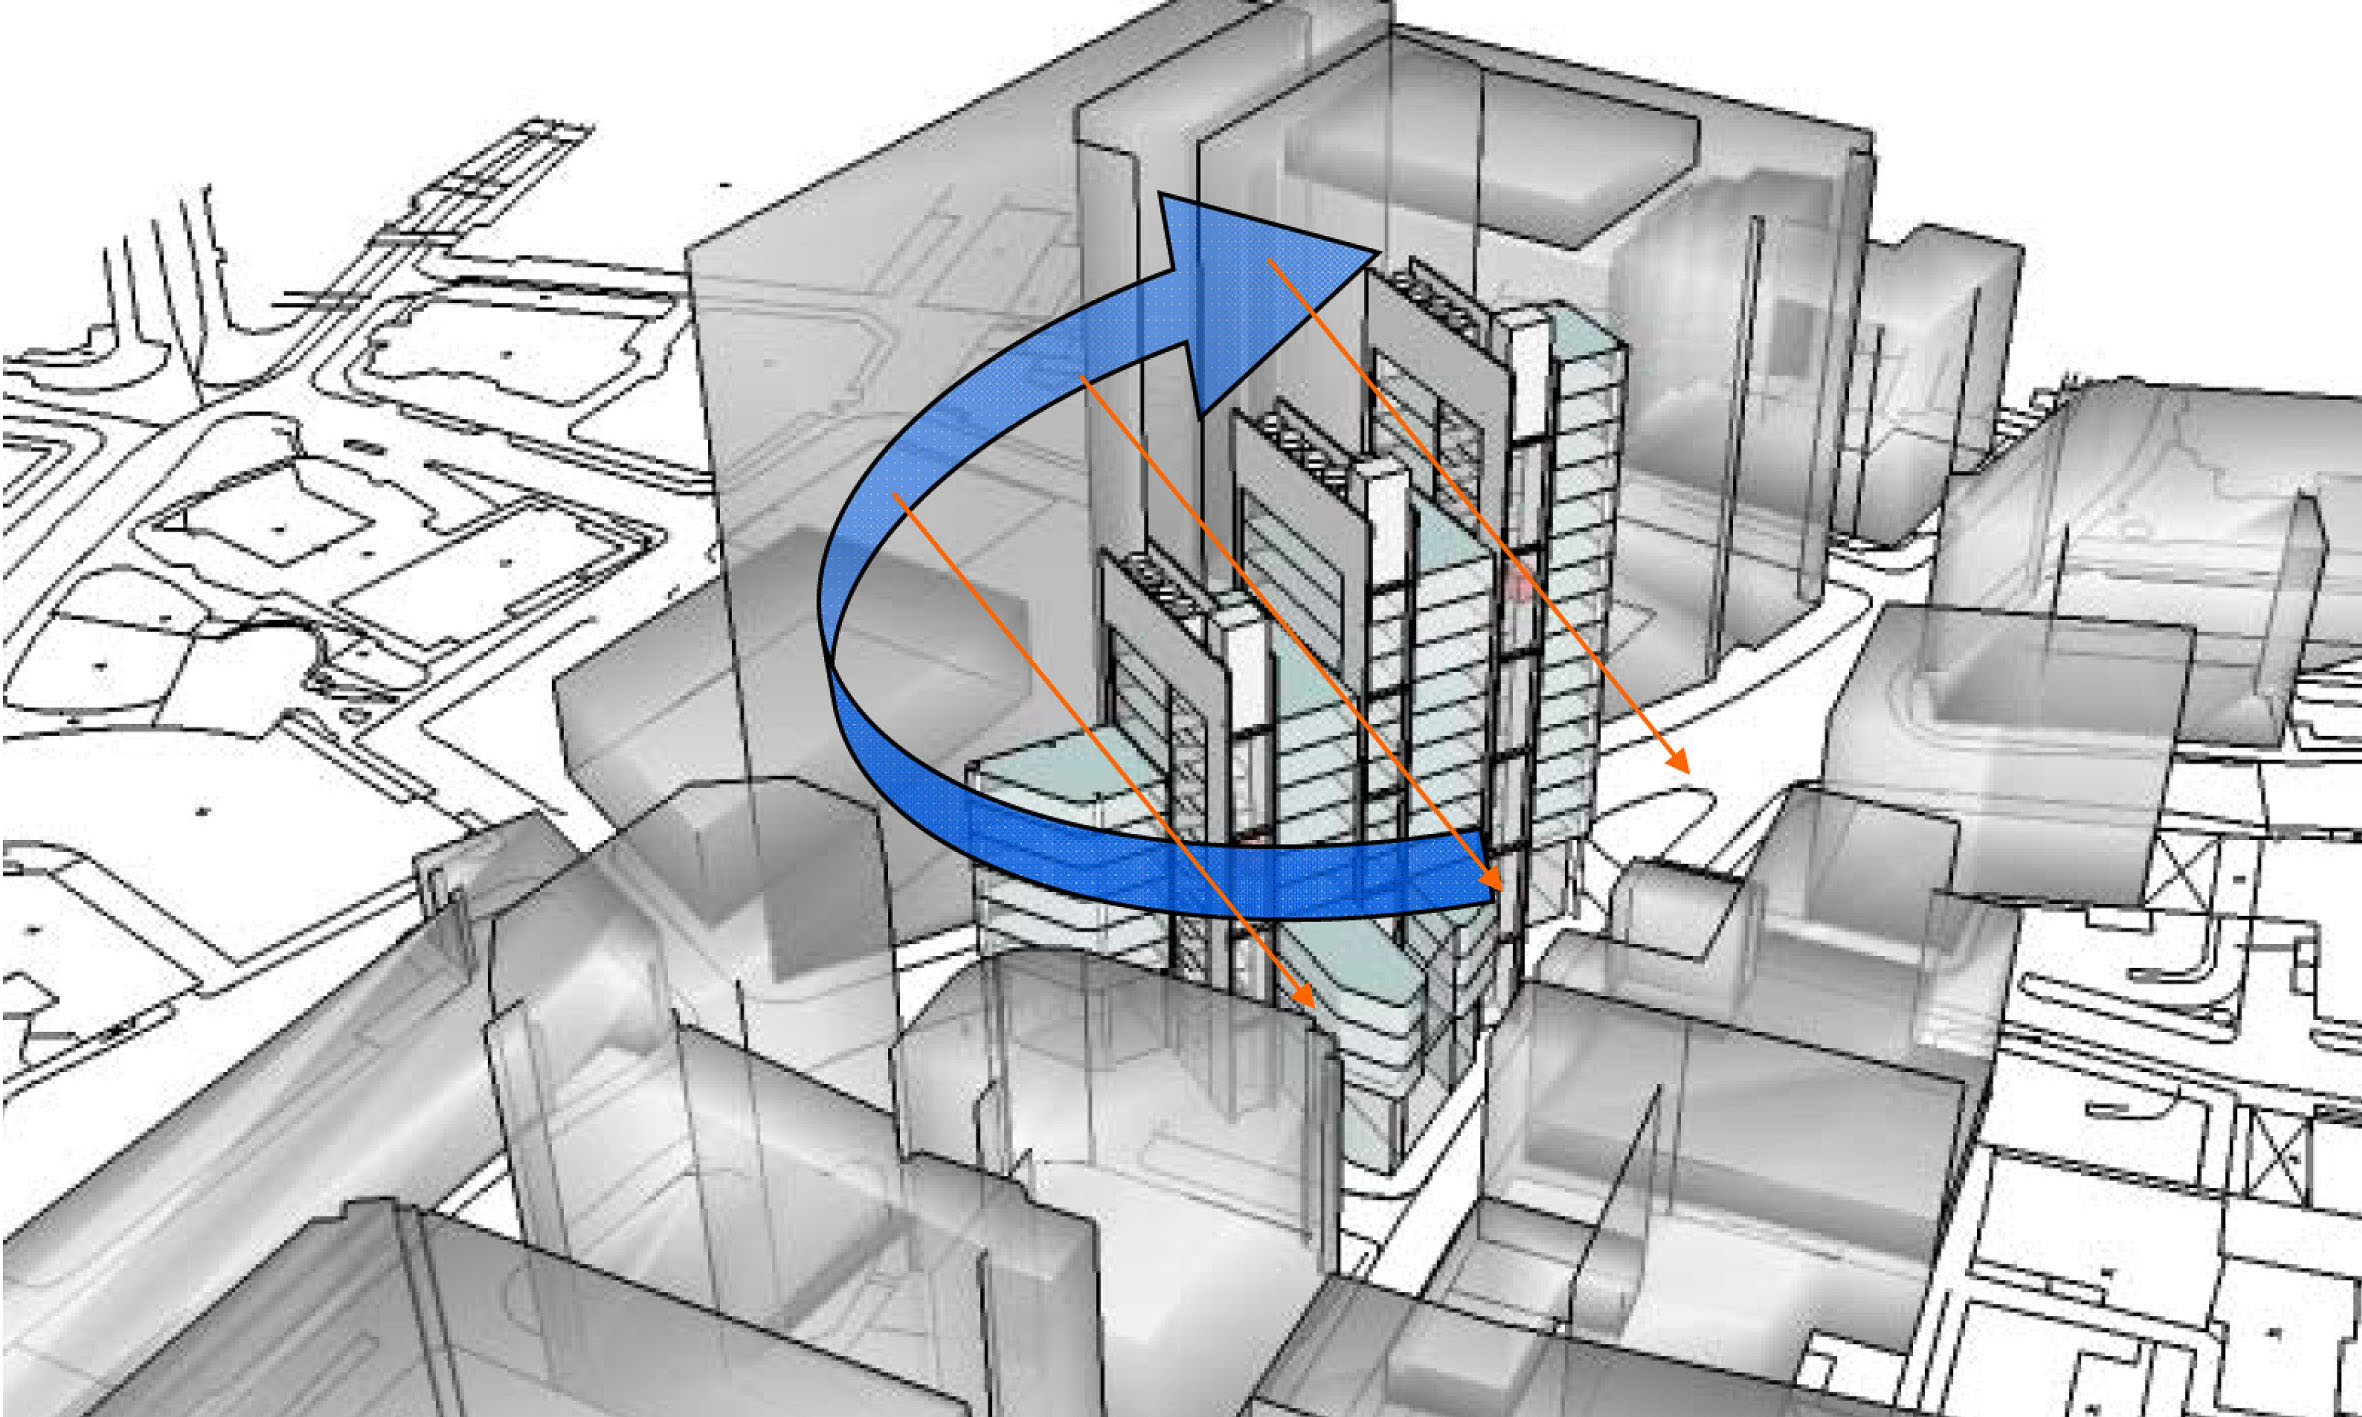 This 3D model diagrams shows the deisign rationale behind the building's porposed height.